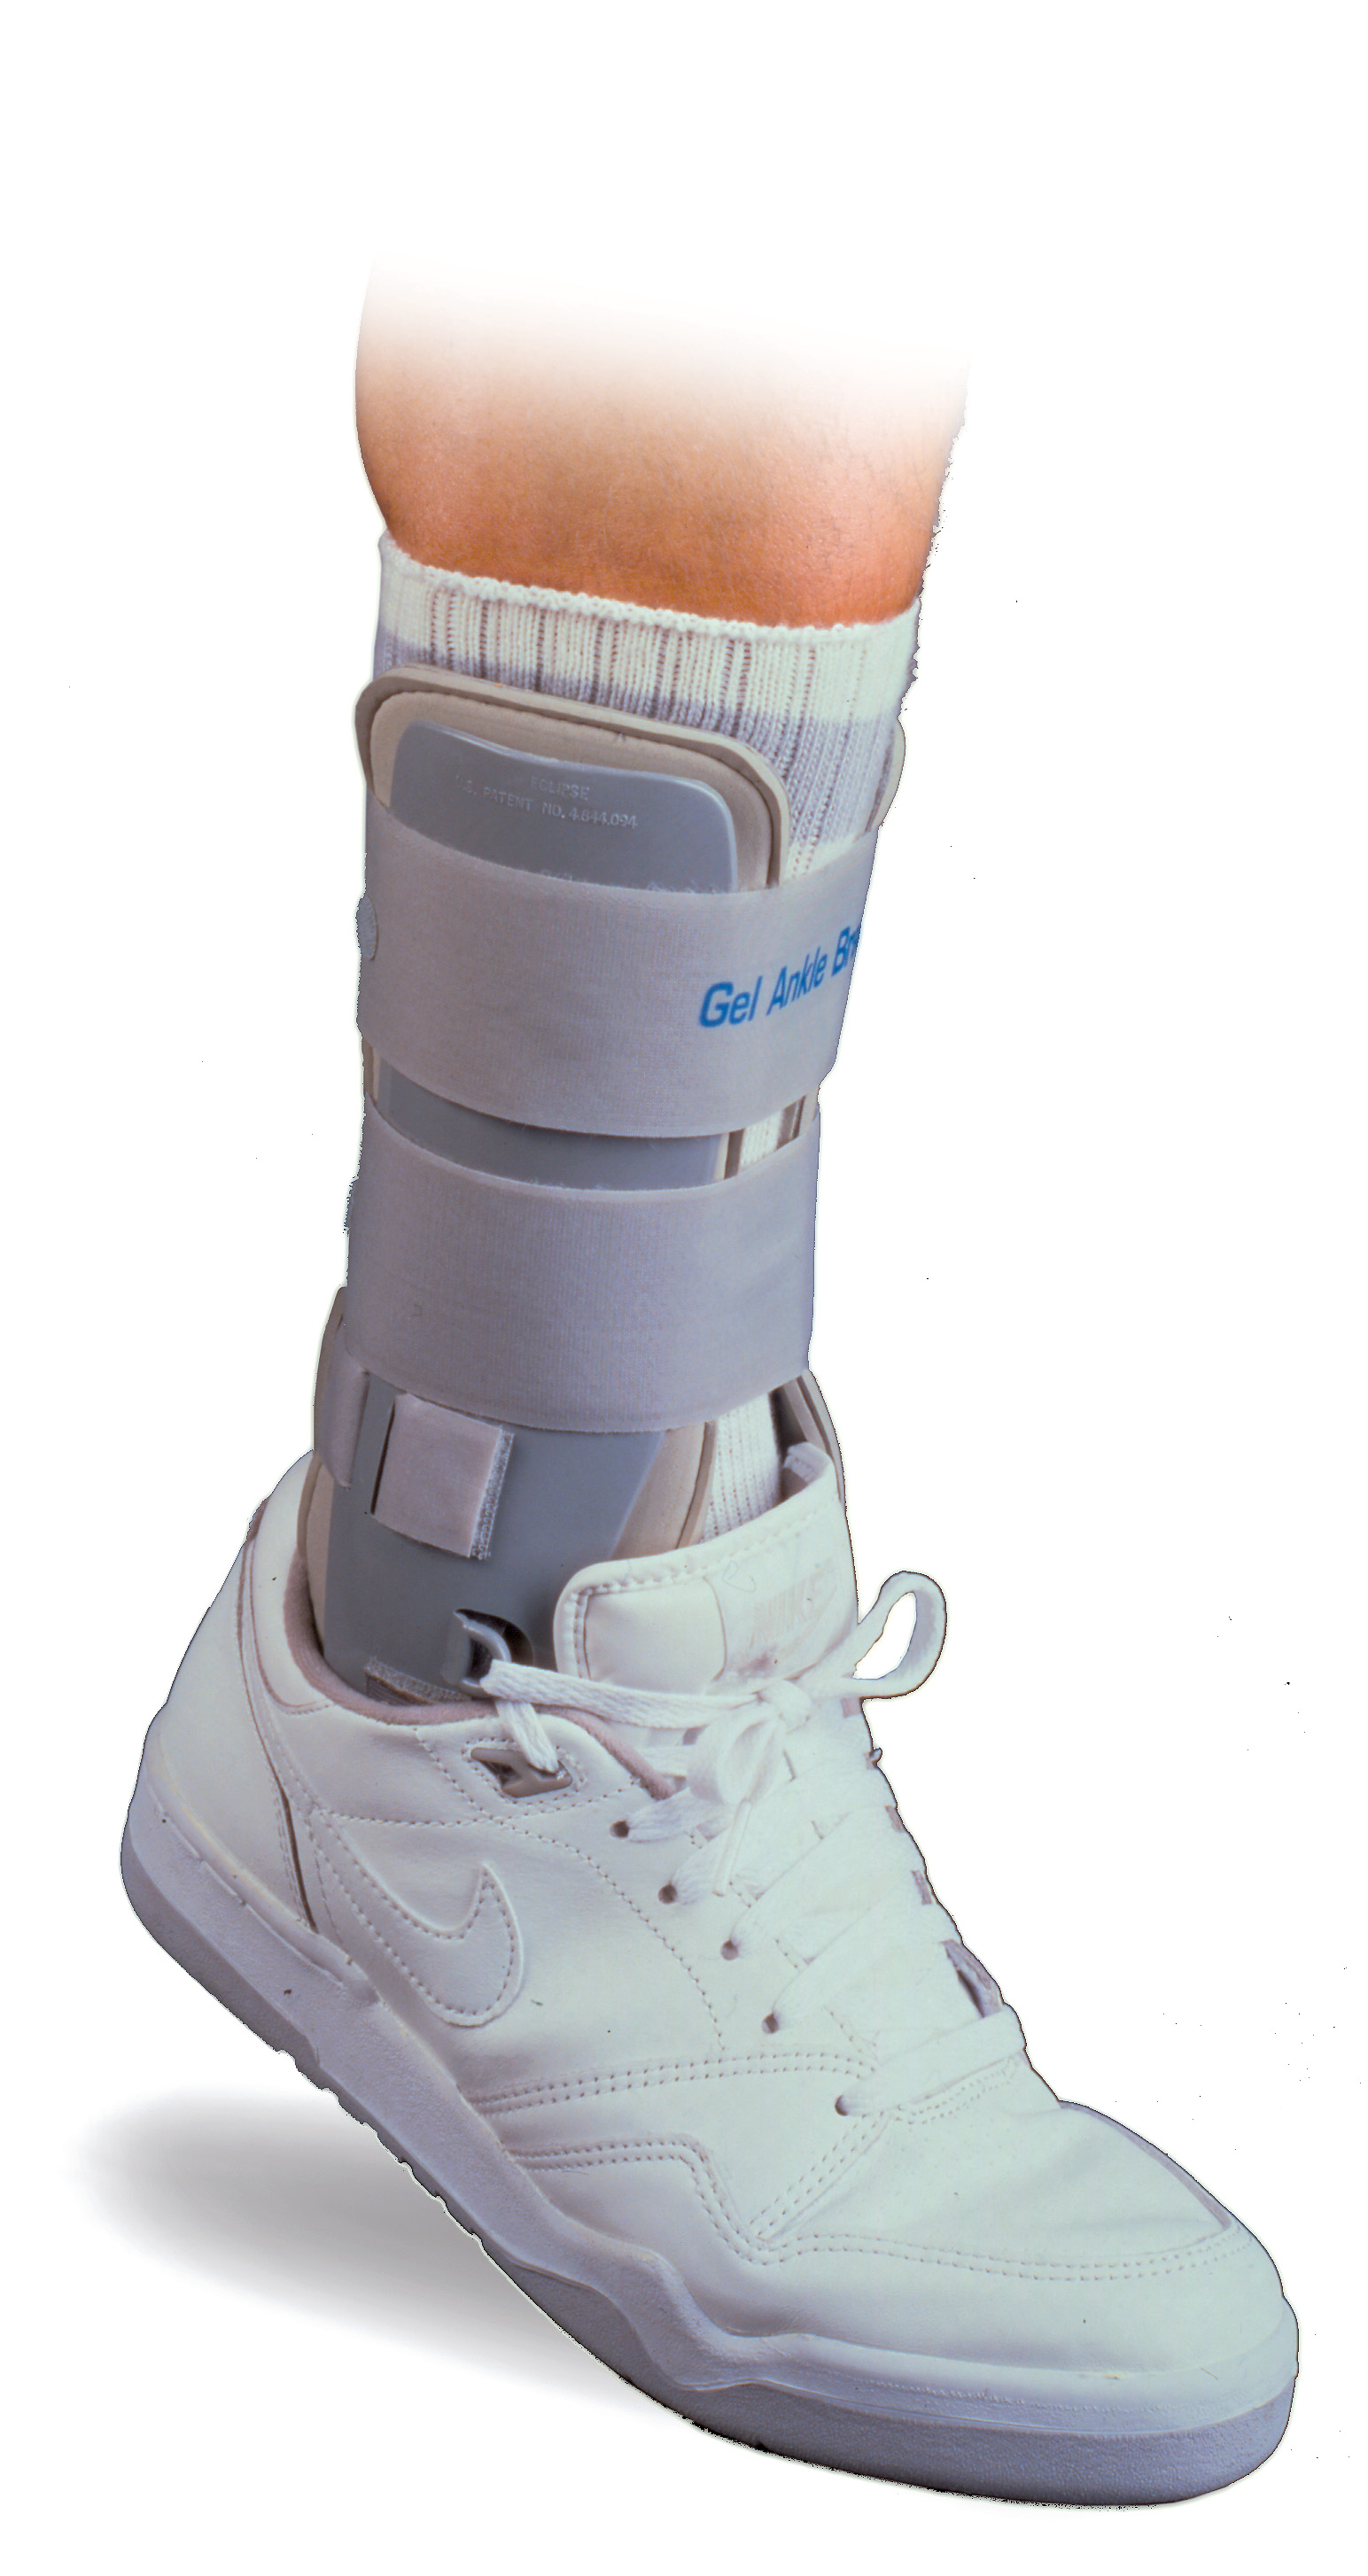 gel-ankle-brace-50-adult-right-e5050r-ossur-os378300-2.jpg